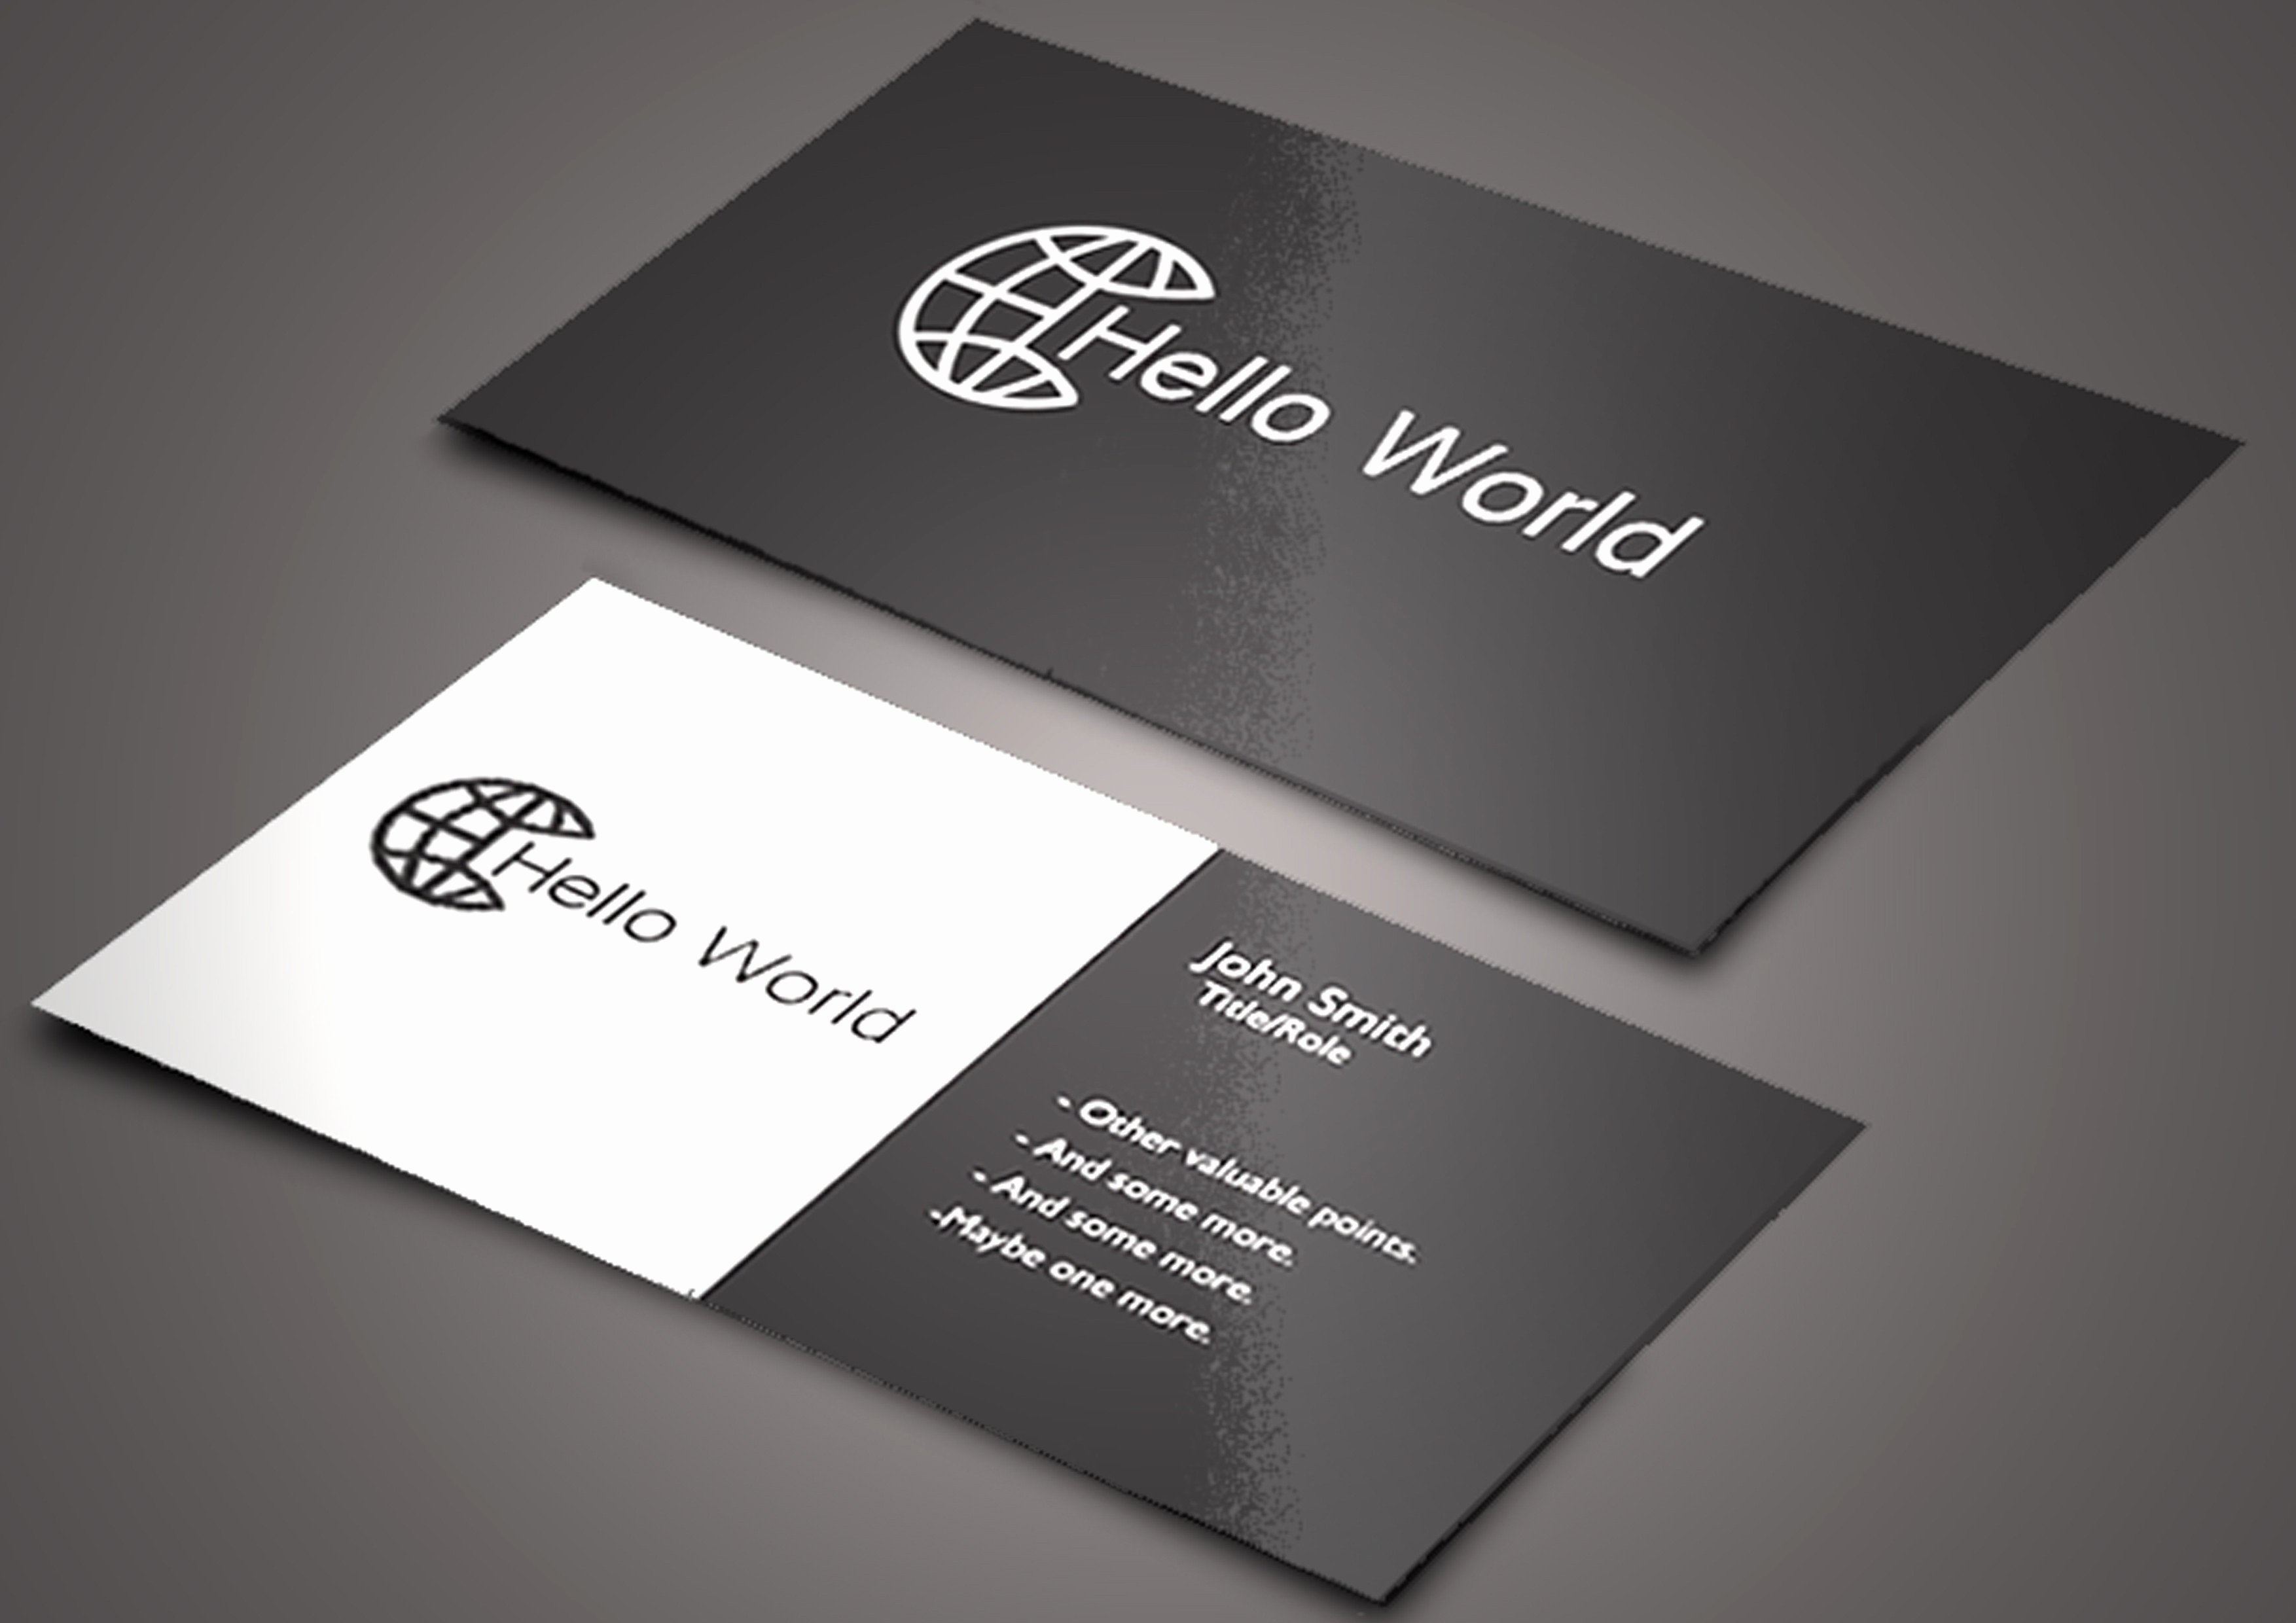 Round Business Card Template Luxury Business Card Rounded Corners Template Beautiful Business